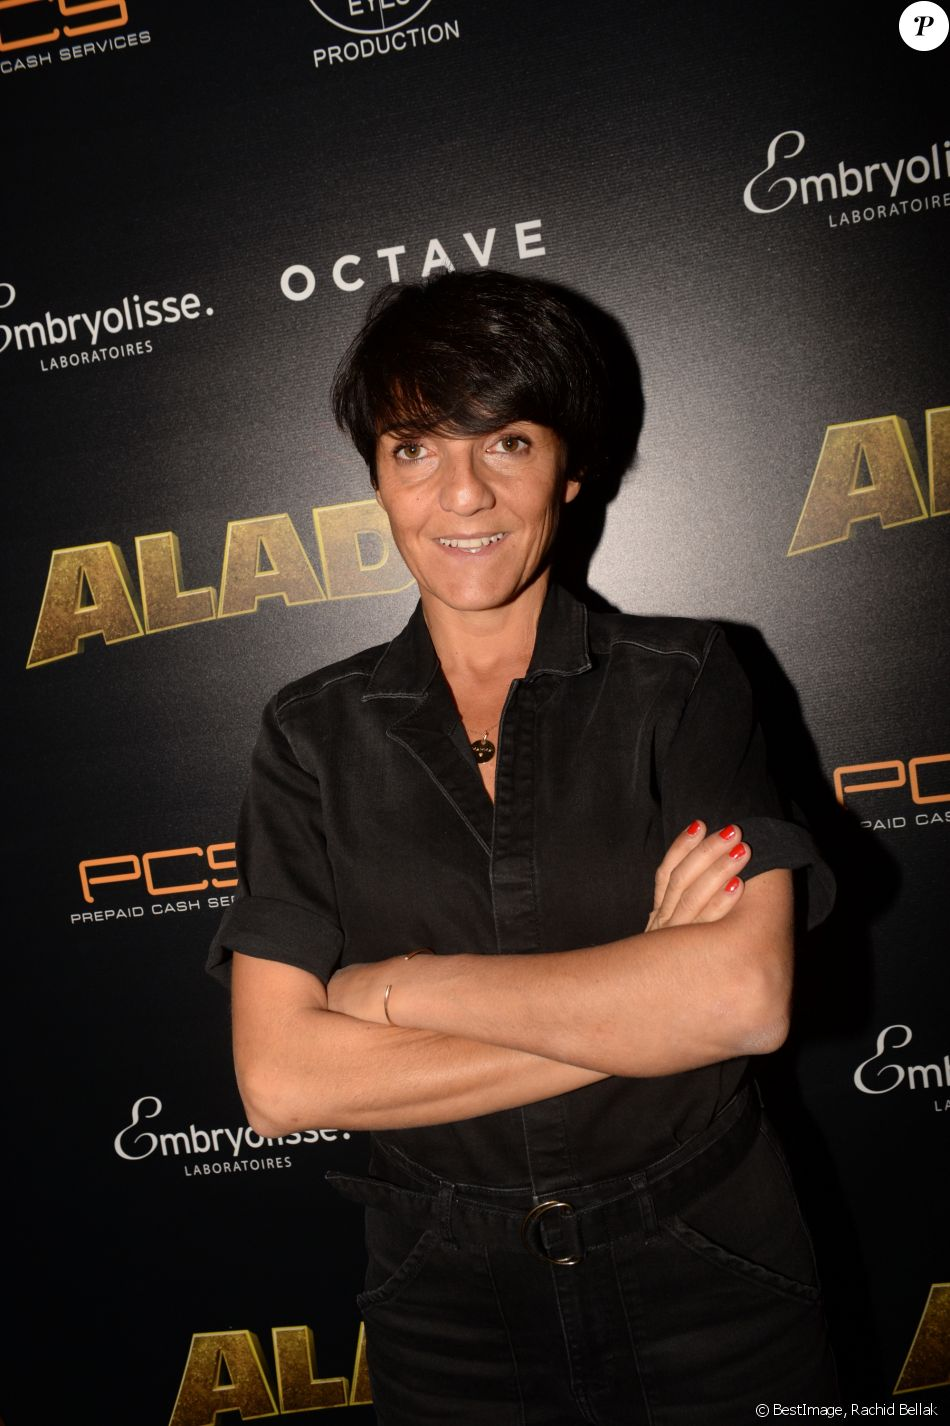 Semi-Exclusif - Florence Foresti - Les célébrités posent lors de l'After Party du film Alad'2 au Club Haussman à Paris le 21 septembre 2018. © Rachid Bellak/Bestimage